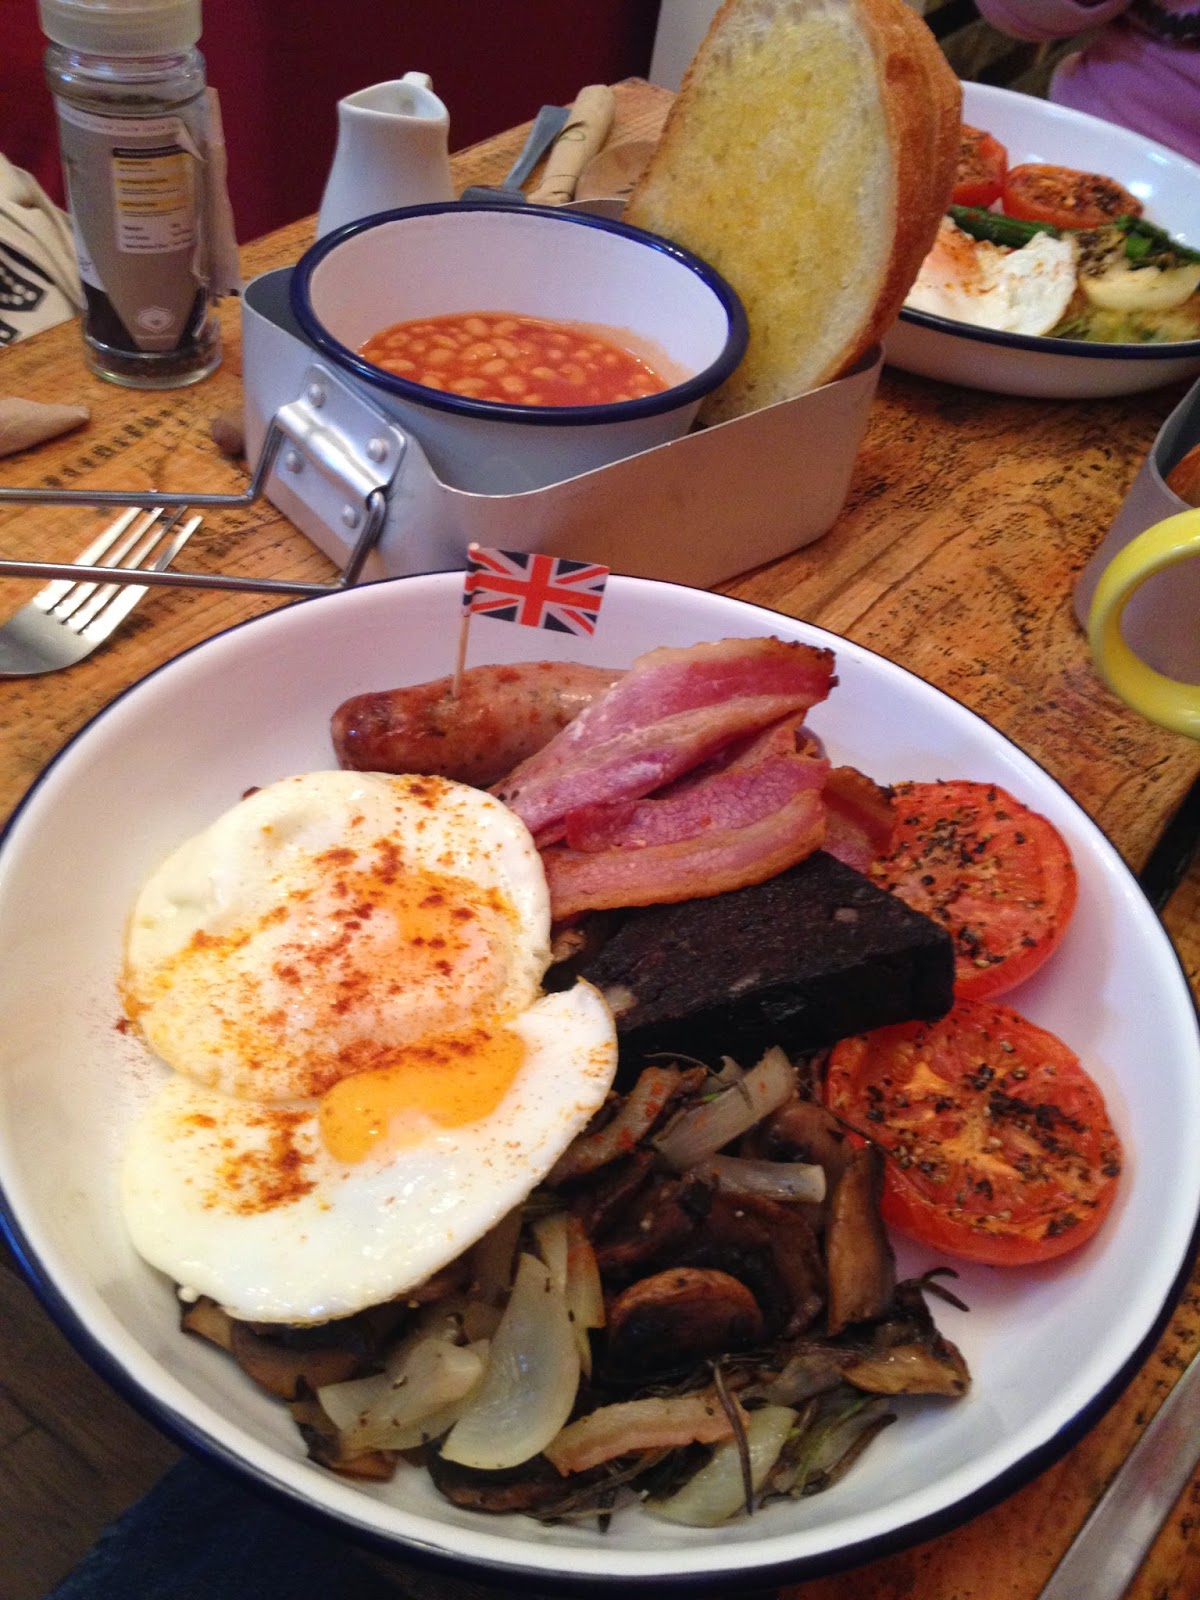 The Fry Up Inspector Fry Up Inspector Recommended